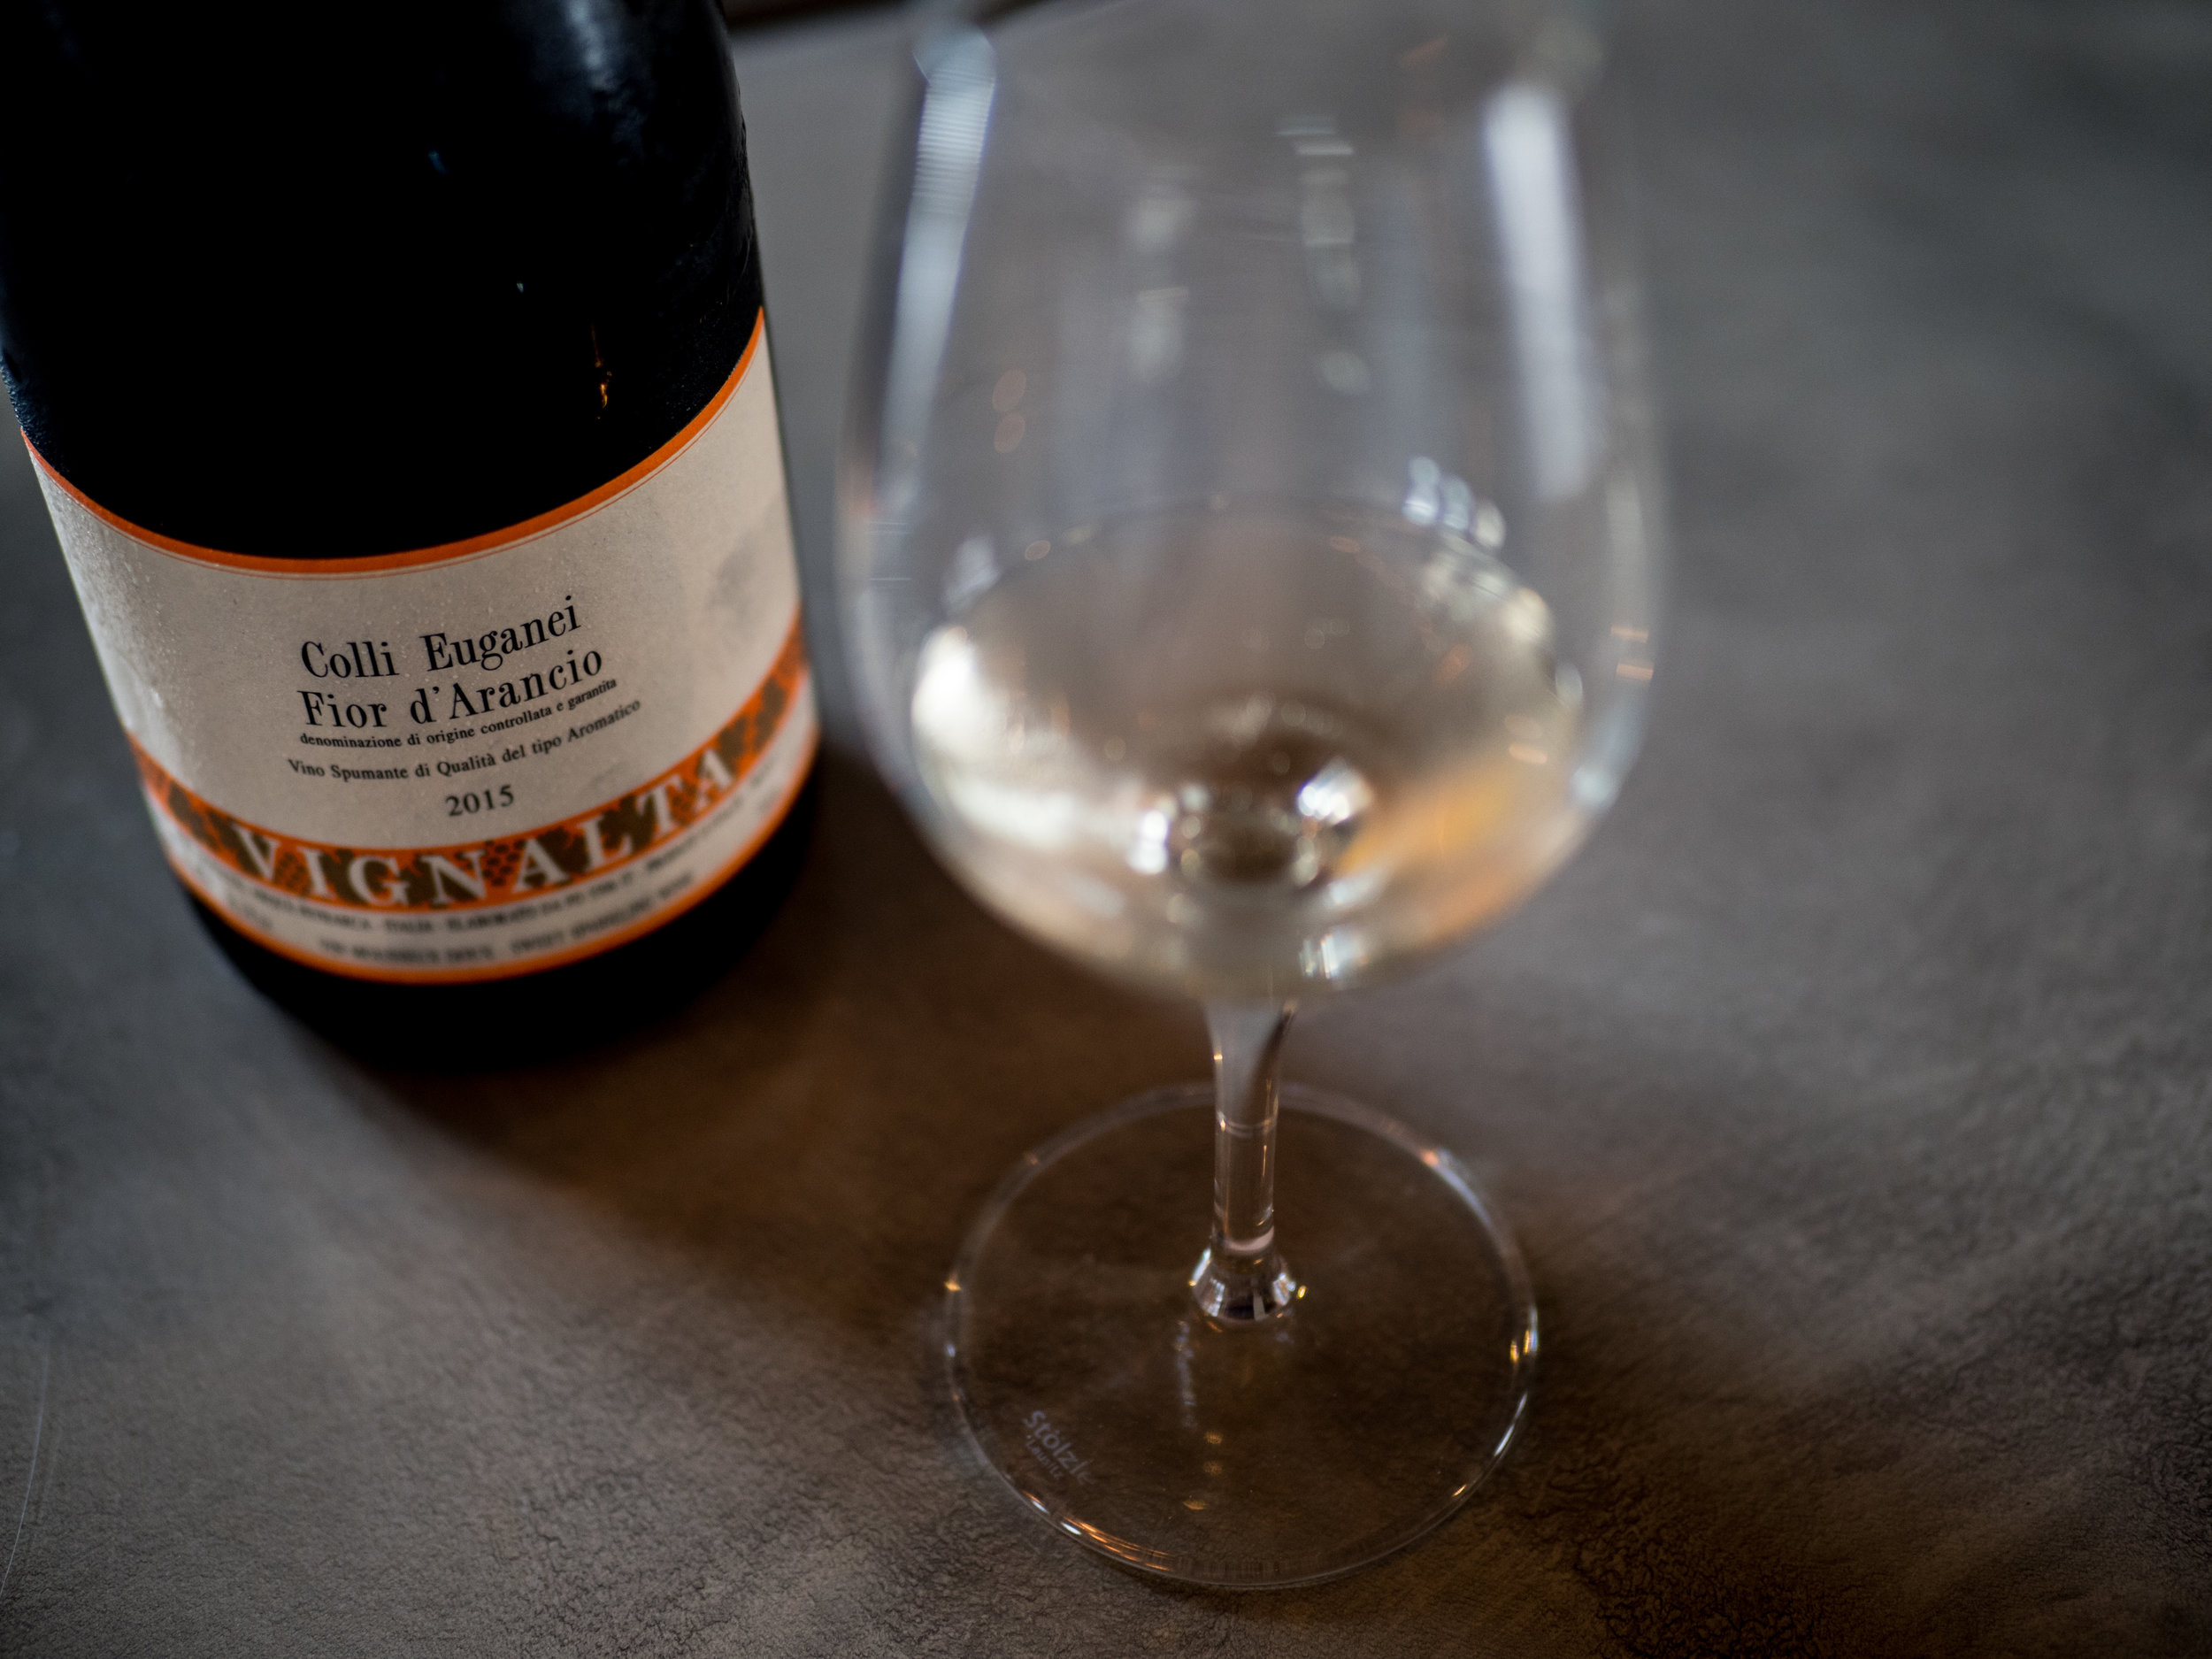 Musings by the Glass - The Nightcap Corollary - Vignalta Fior a'Arancio Orange Muscat